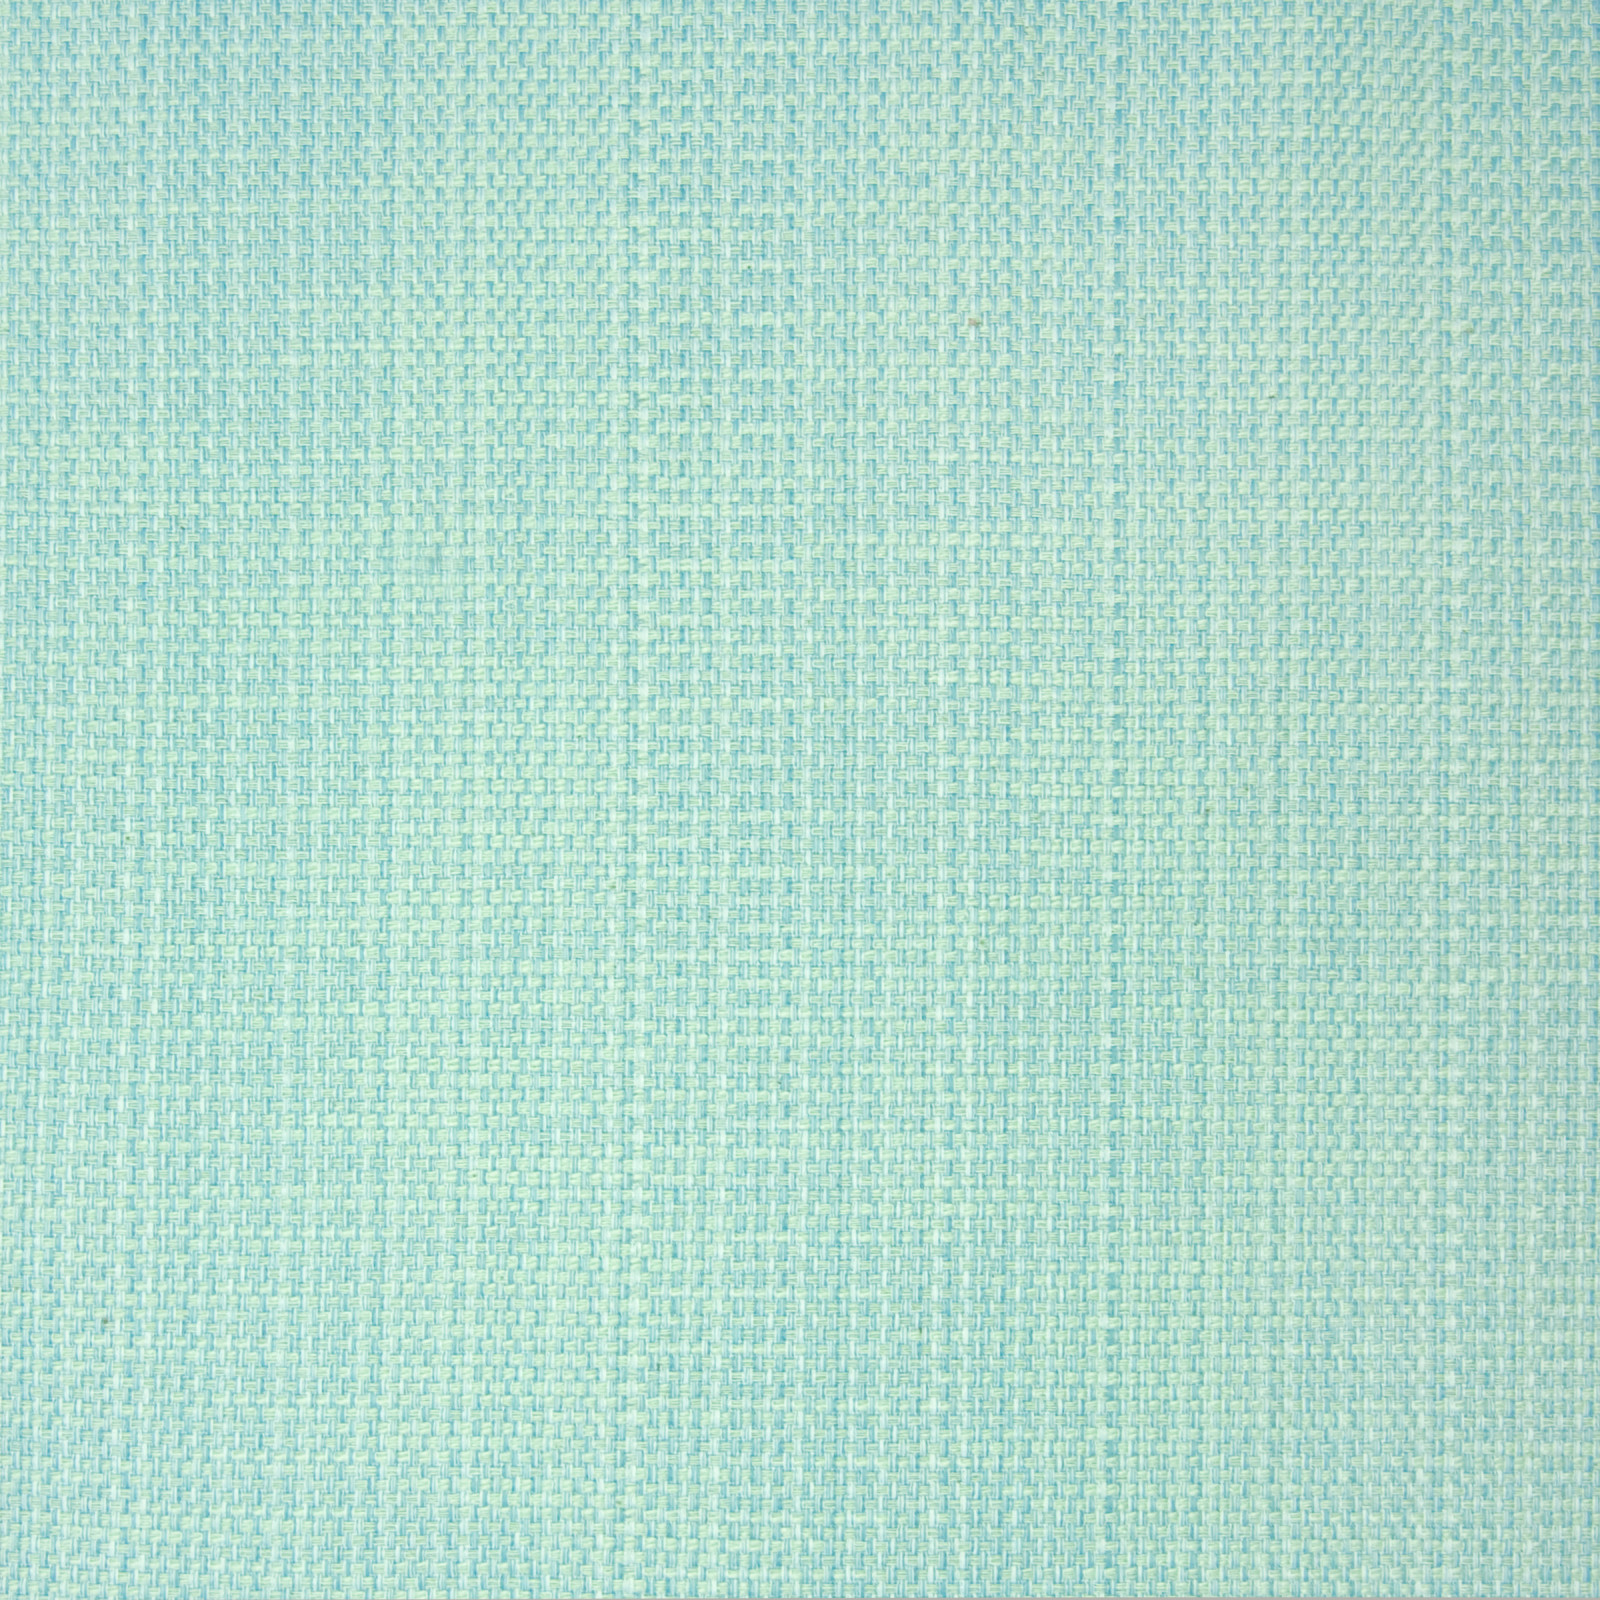 B1421 Aquamarine Greenhouse Fabrics